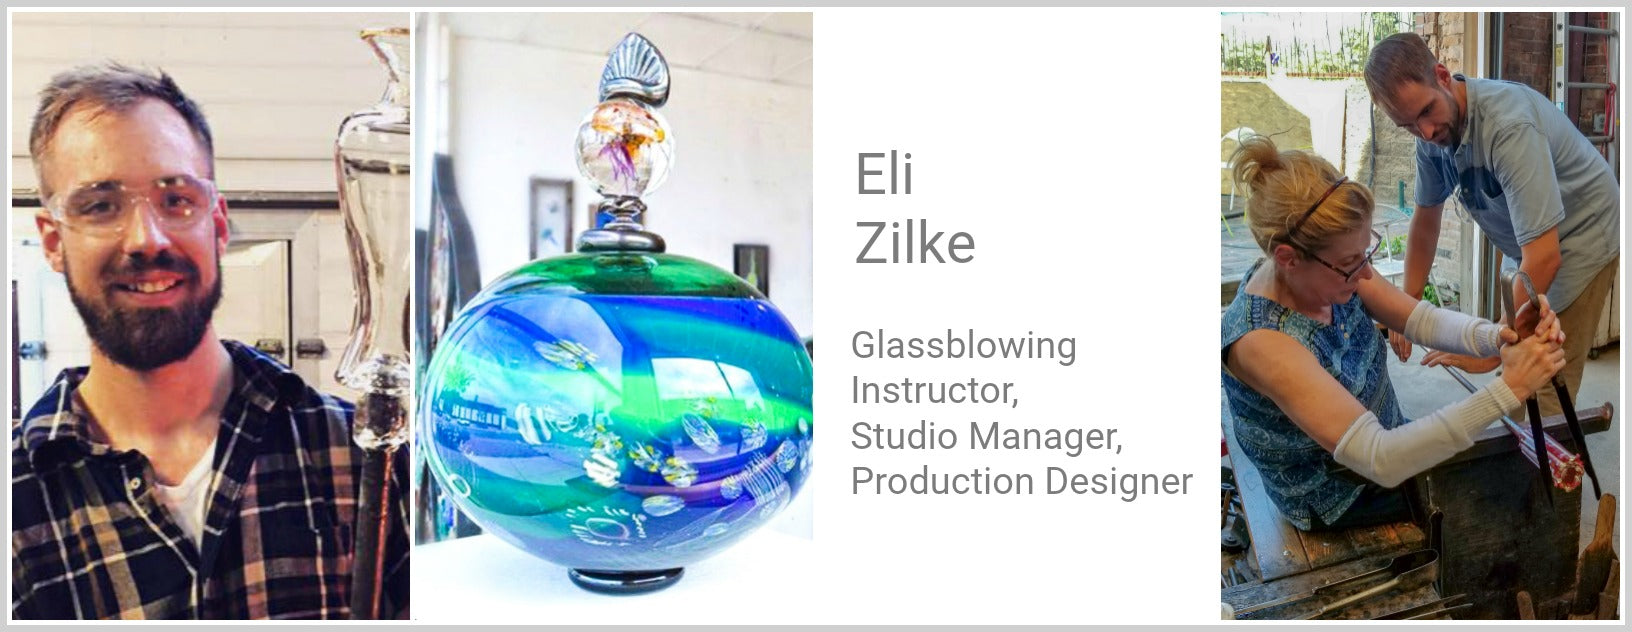 Eli Zilke, Glassblowing Instructor, Studio Manager, Production Designer